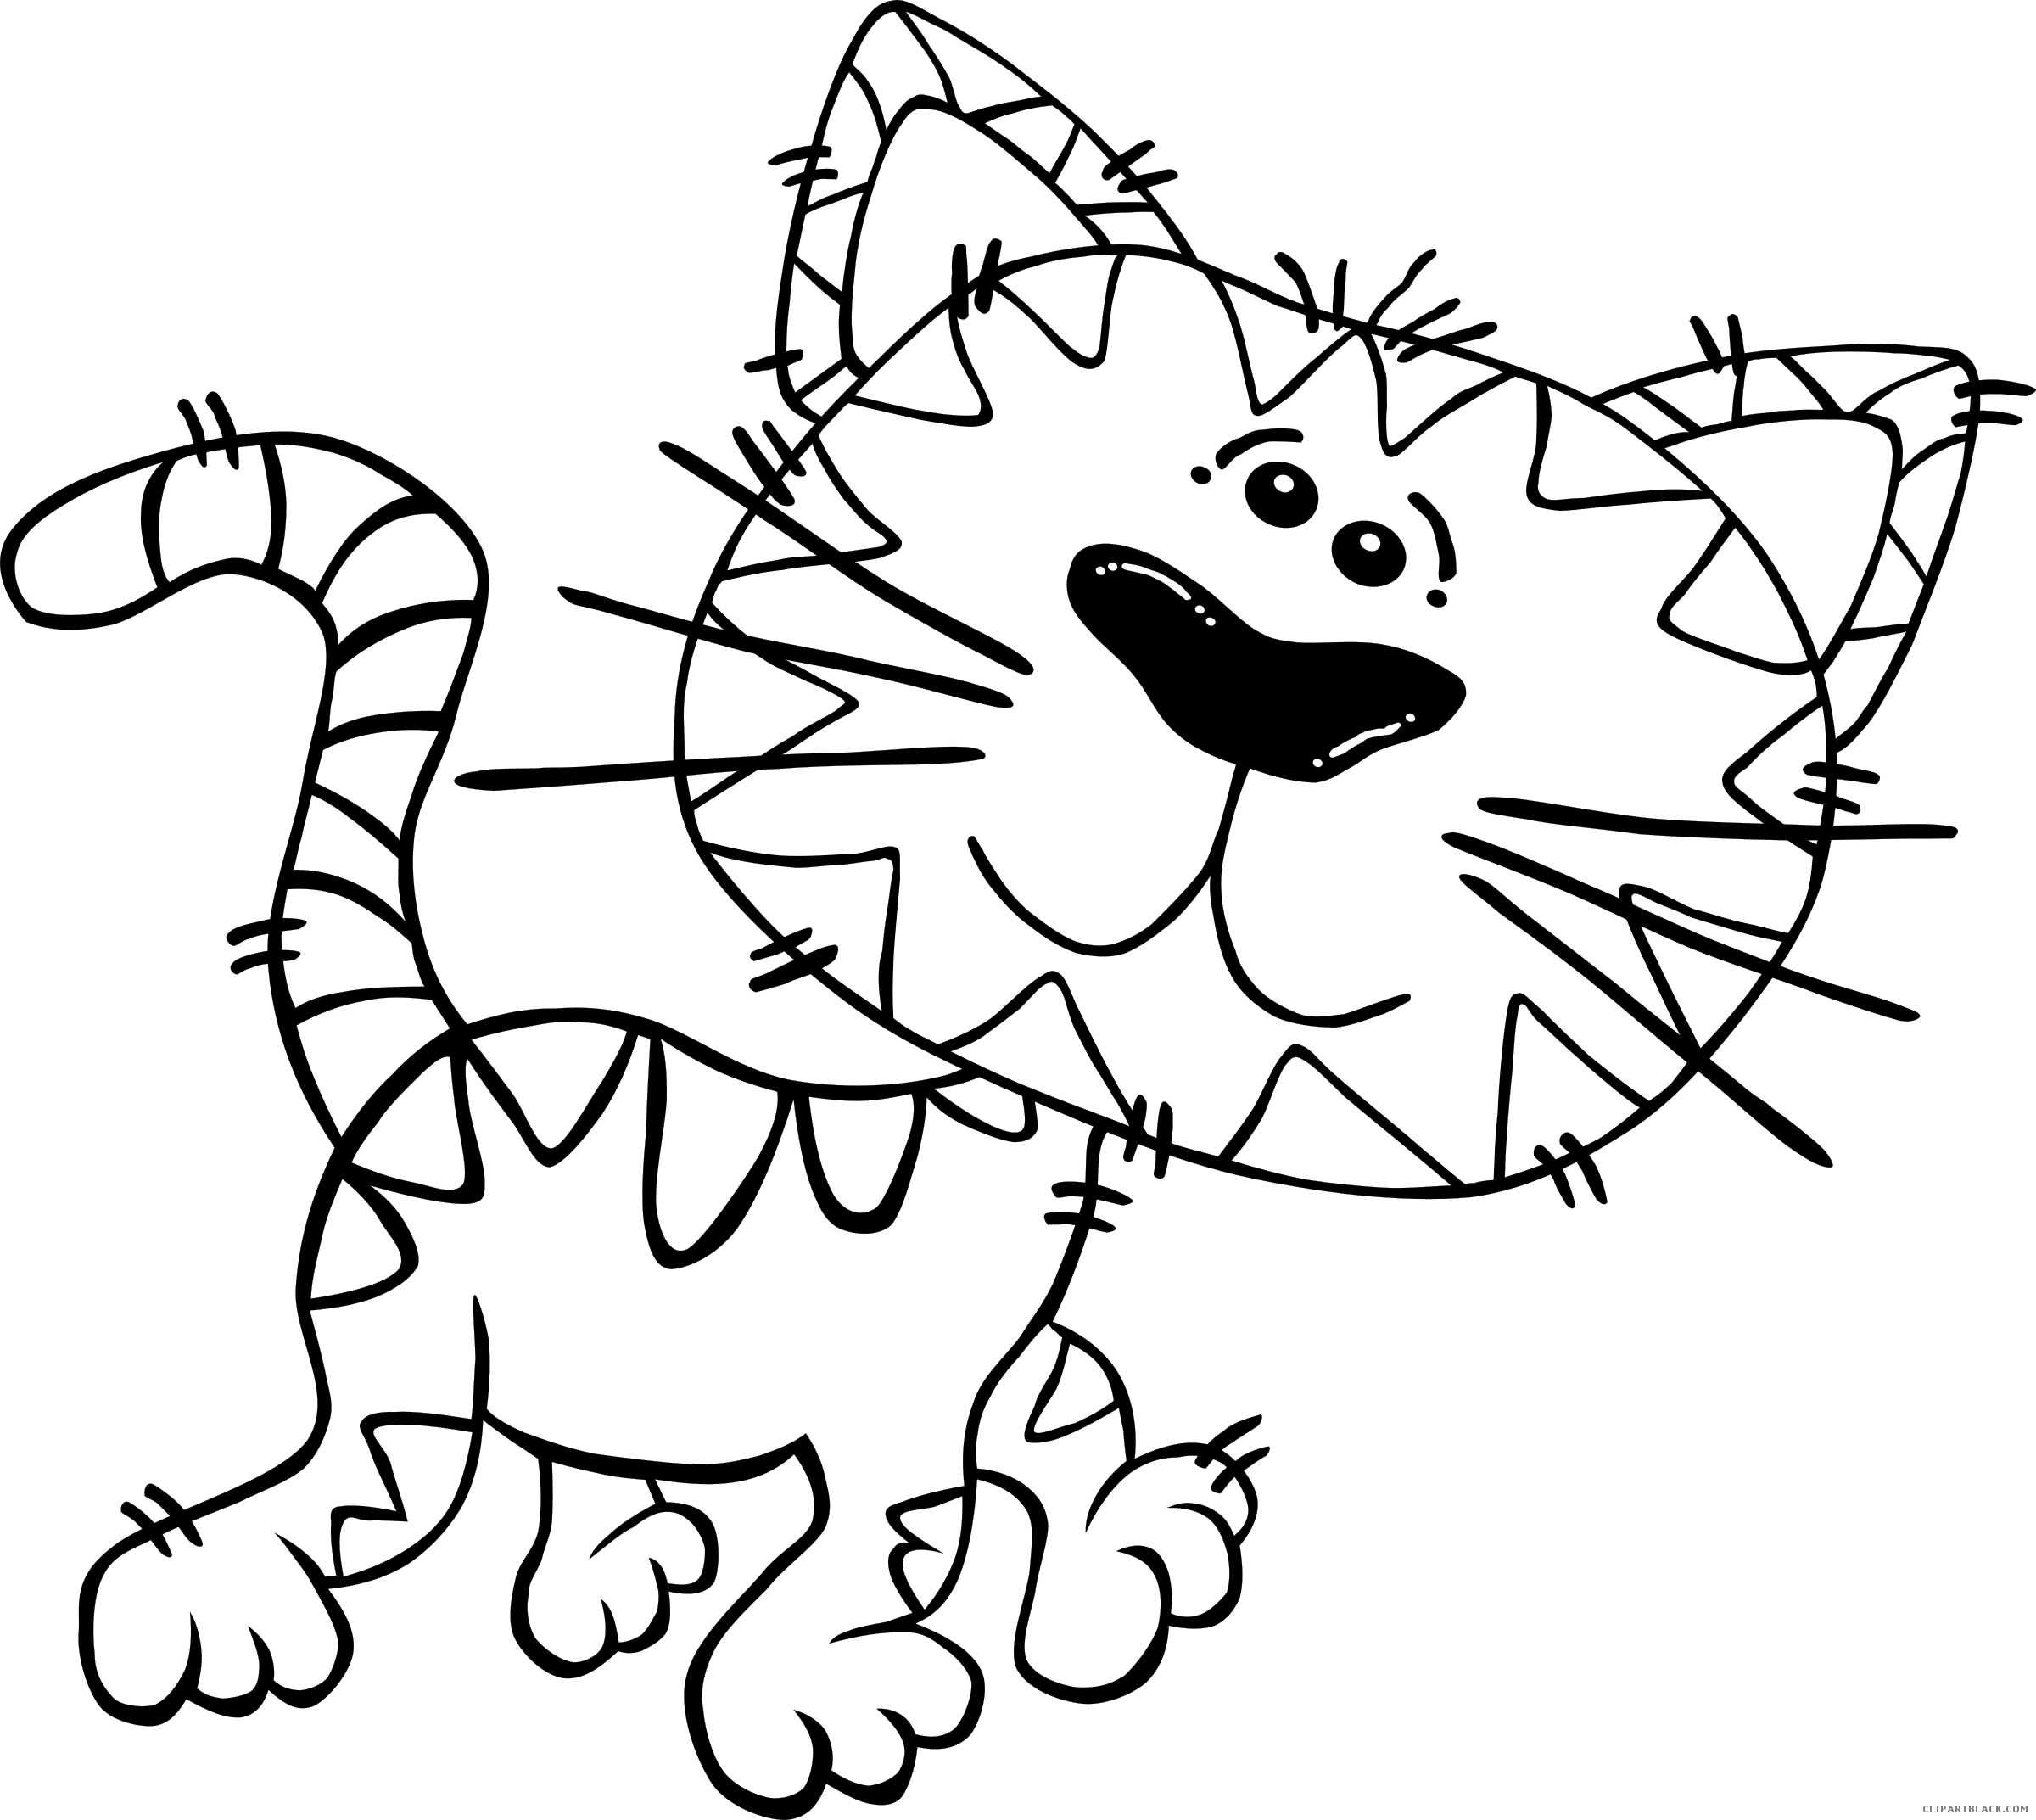 Black and white cat clipart free image library download Cartoon Cat Clipart - Page 2 of 5 - ClipartBlack.com image library download